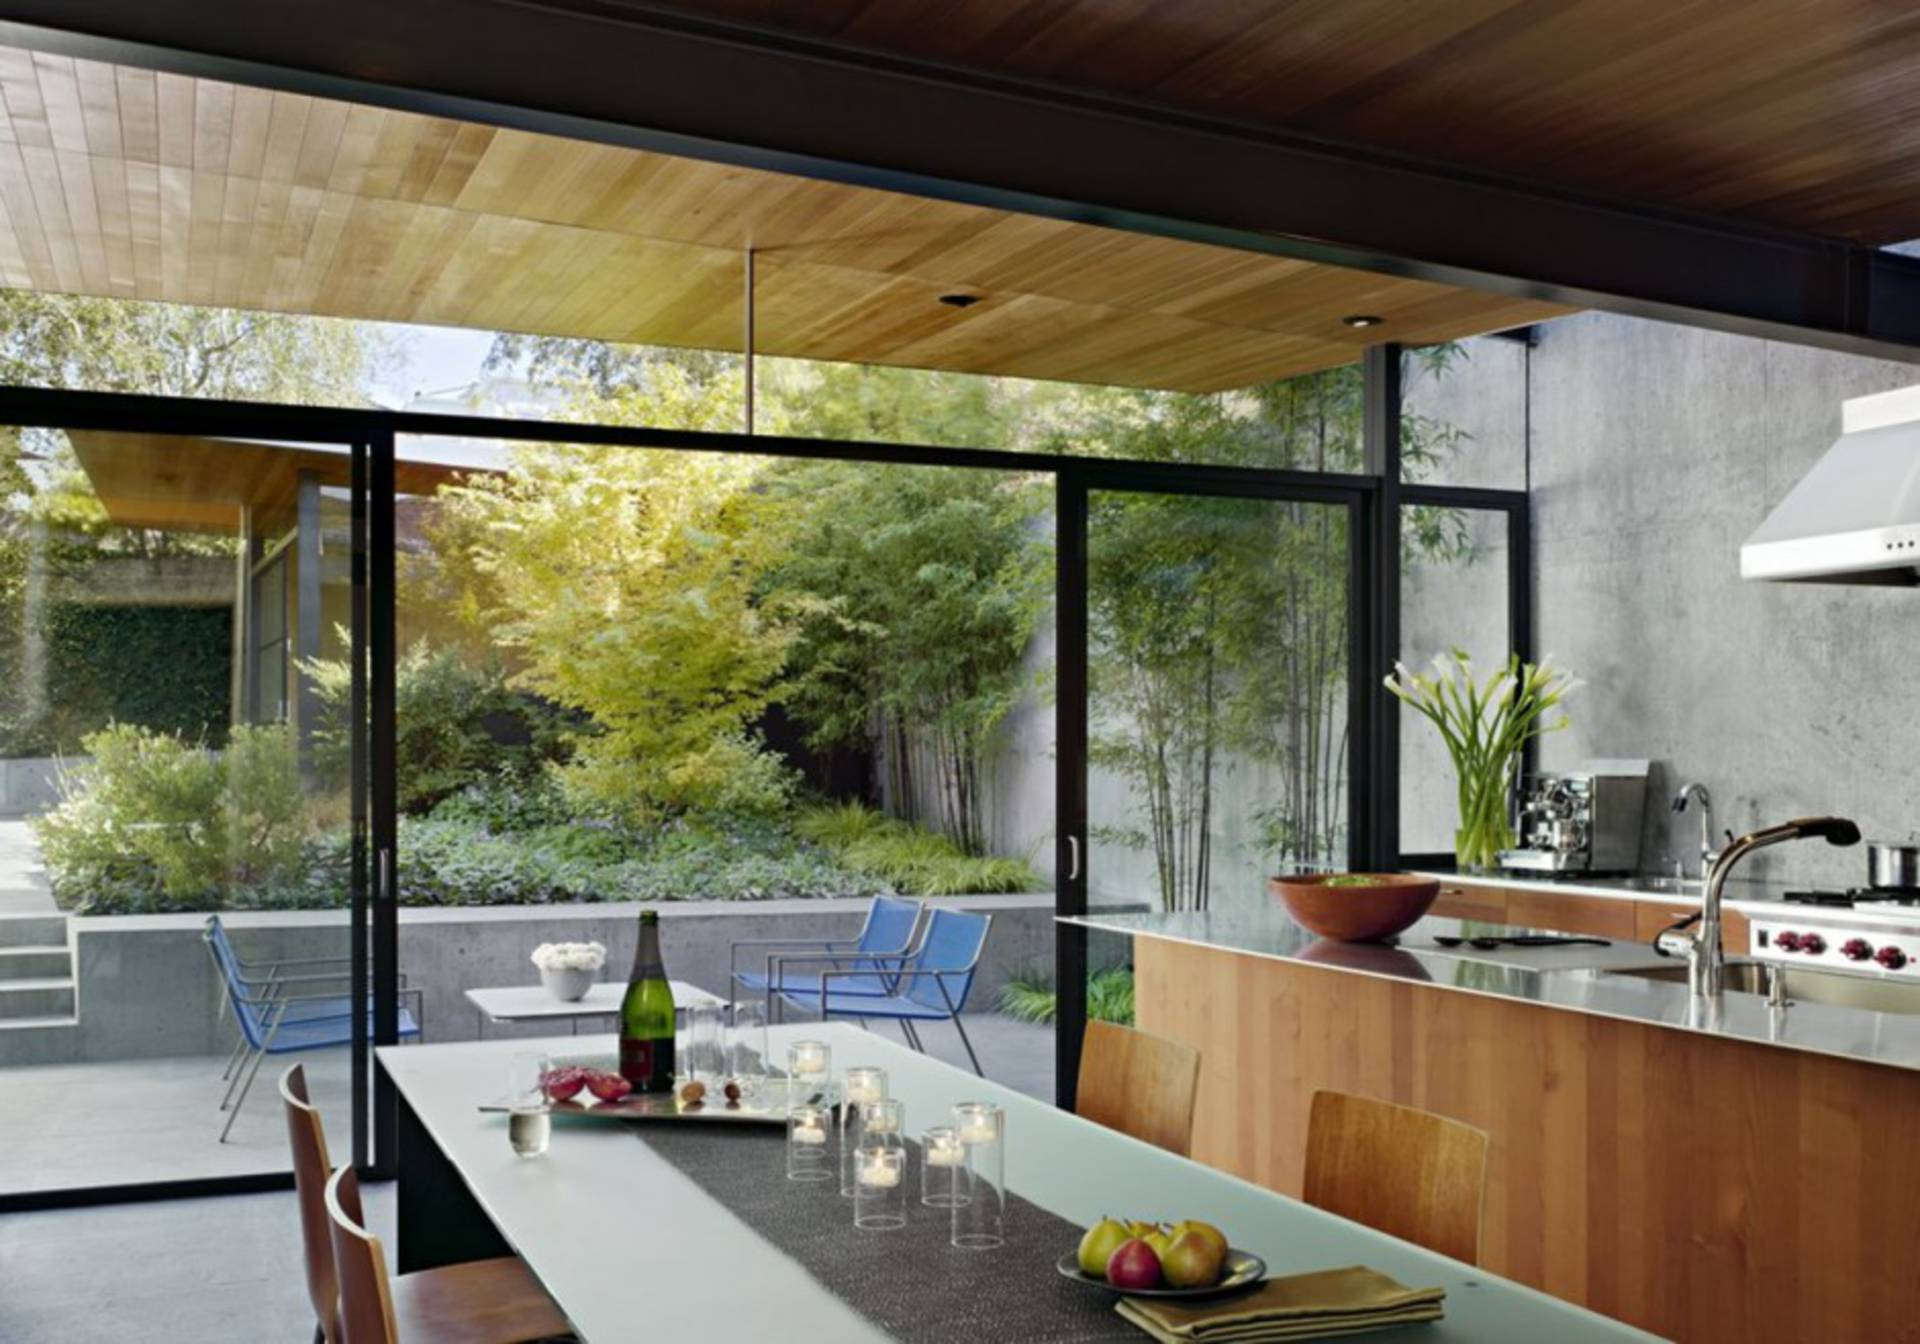 Diamond project house in san francisco california home for Home remodeling architecture